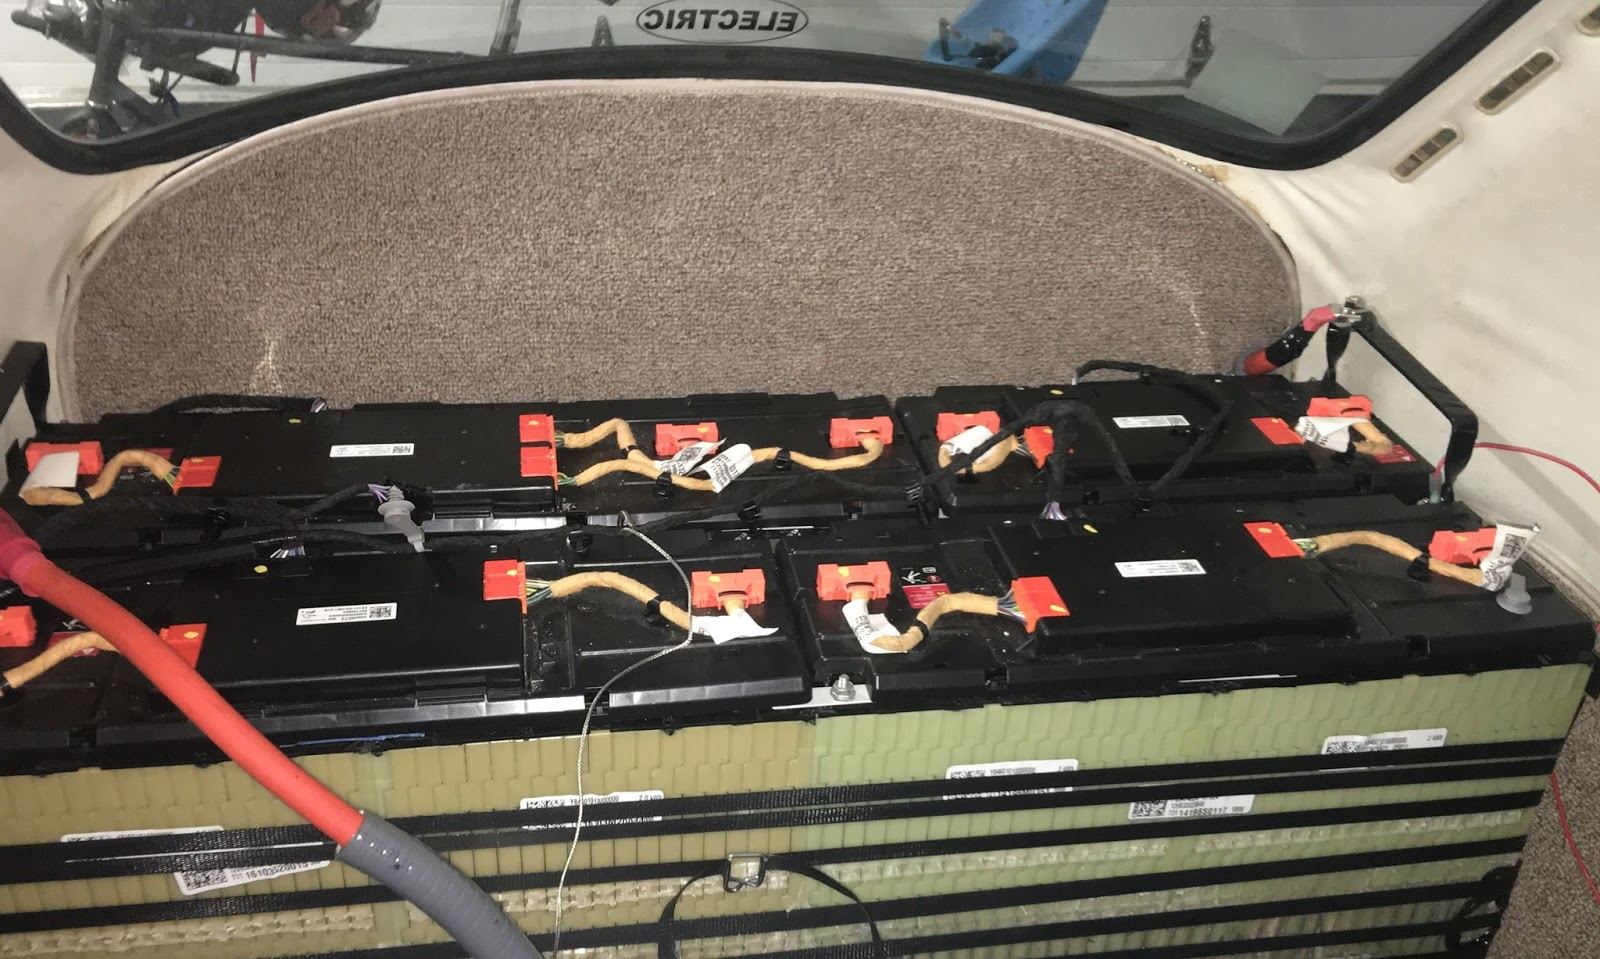 Electric Go Kart Re Using Chevy Volt Oem Bms For Ev Conversion Wiring Harness The Entire Battery Pack Reconfigured Into Two Rows Fit Area Behind Rear Seats Of Vw Original Units And Is